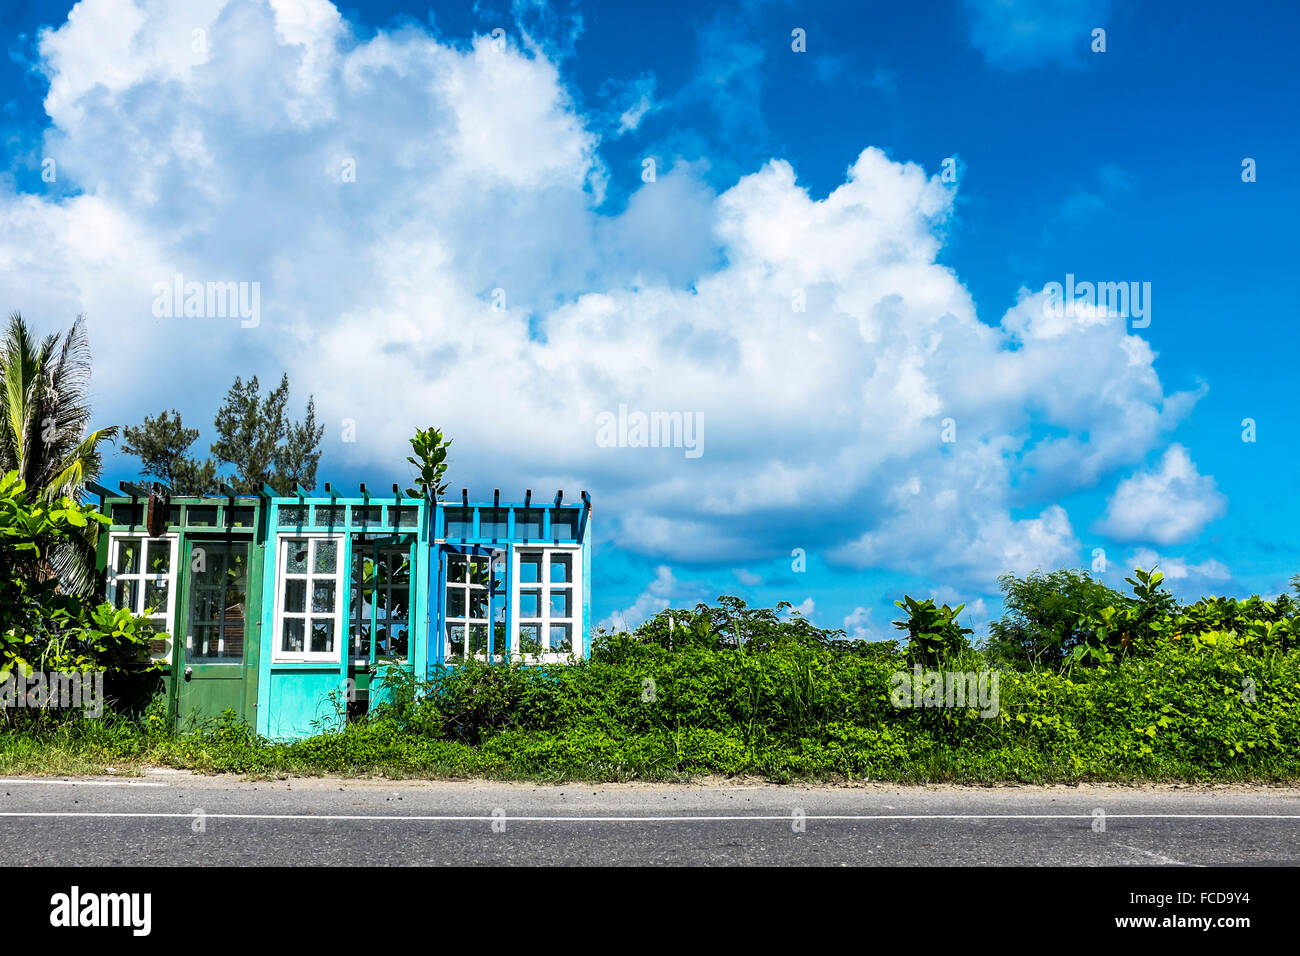 Built Structure Next To Road - Stock Image